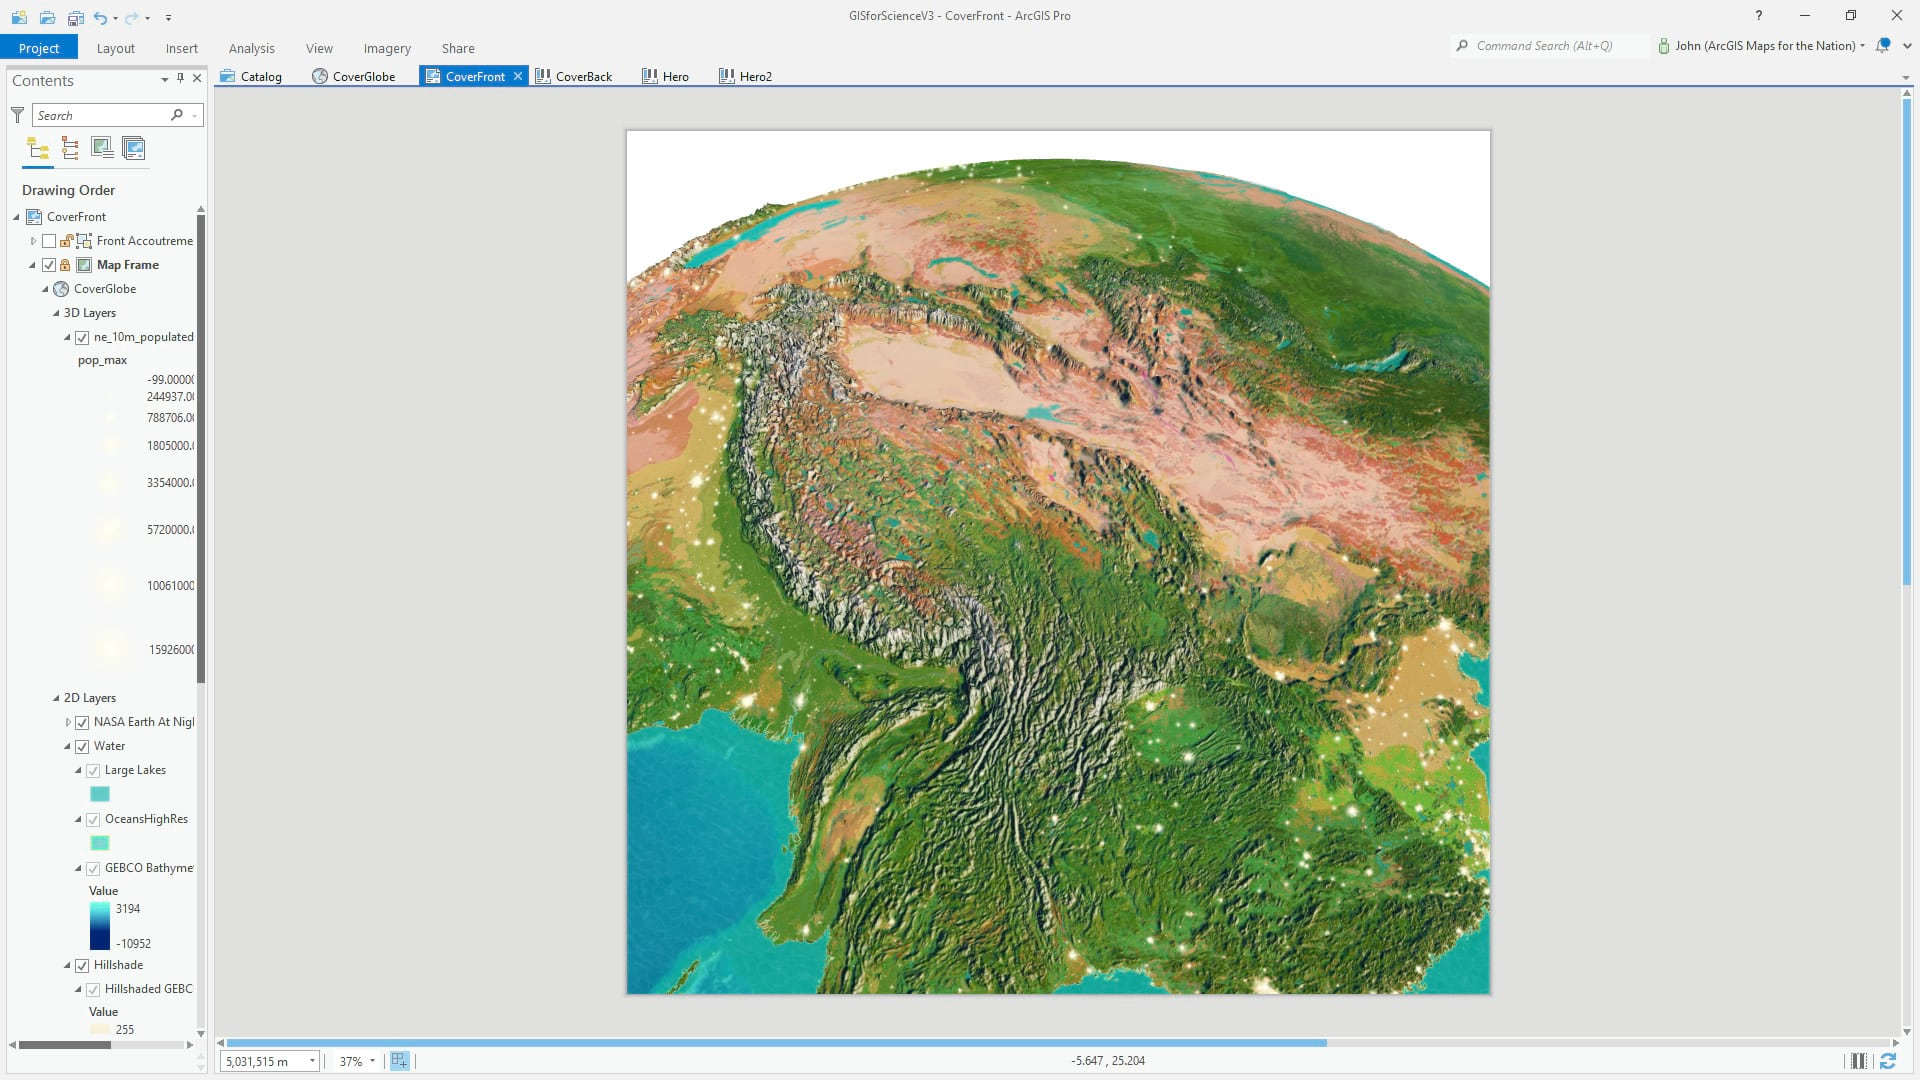 ArcGIS Pro 3D global scene with firefly symbol cities.